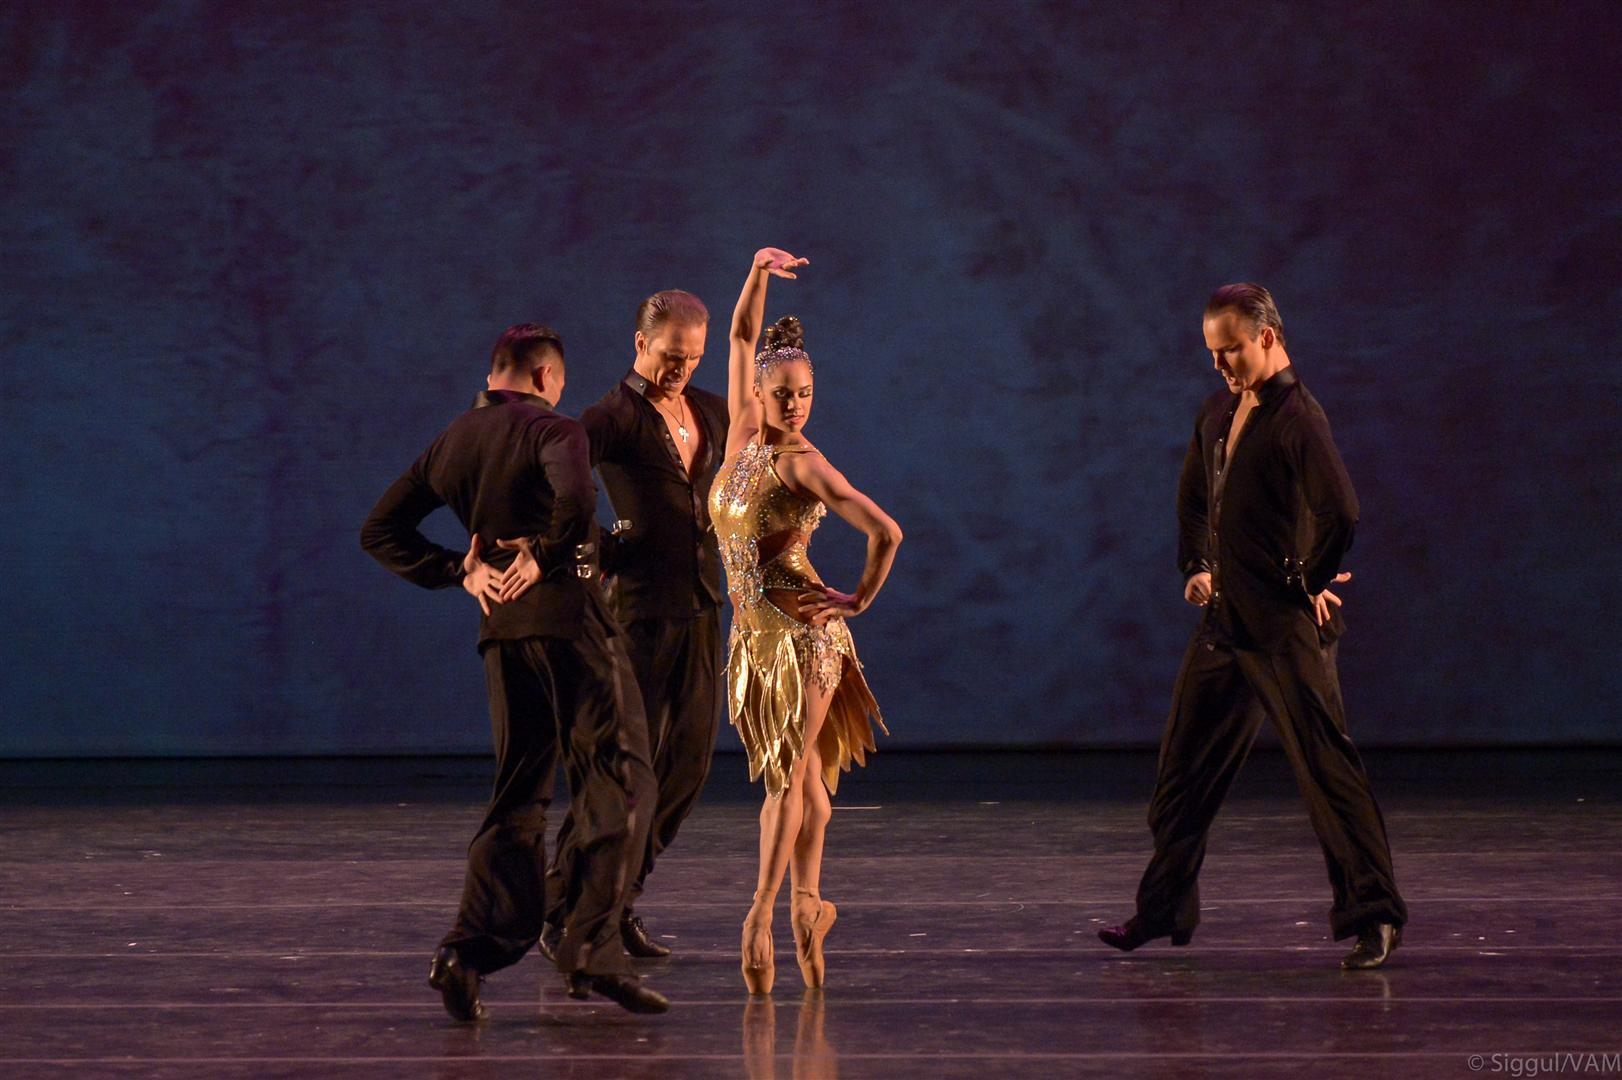 Misty-Copeland-in-the-World-Premiere-piece-_Ameska_-choreographed-by-Derek-Hough